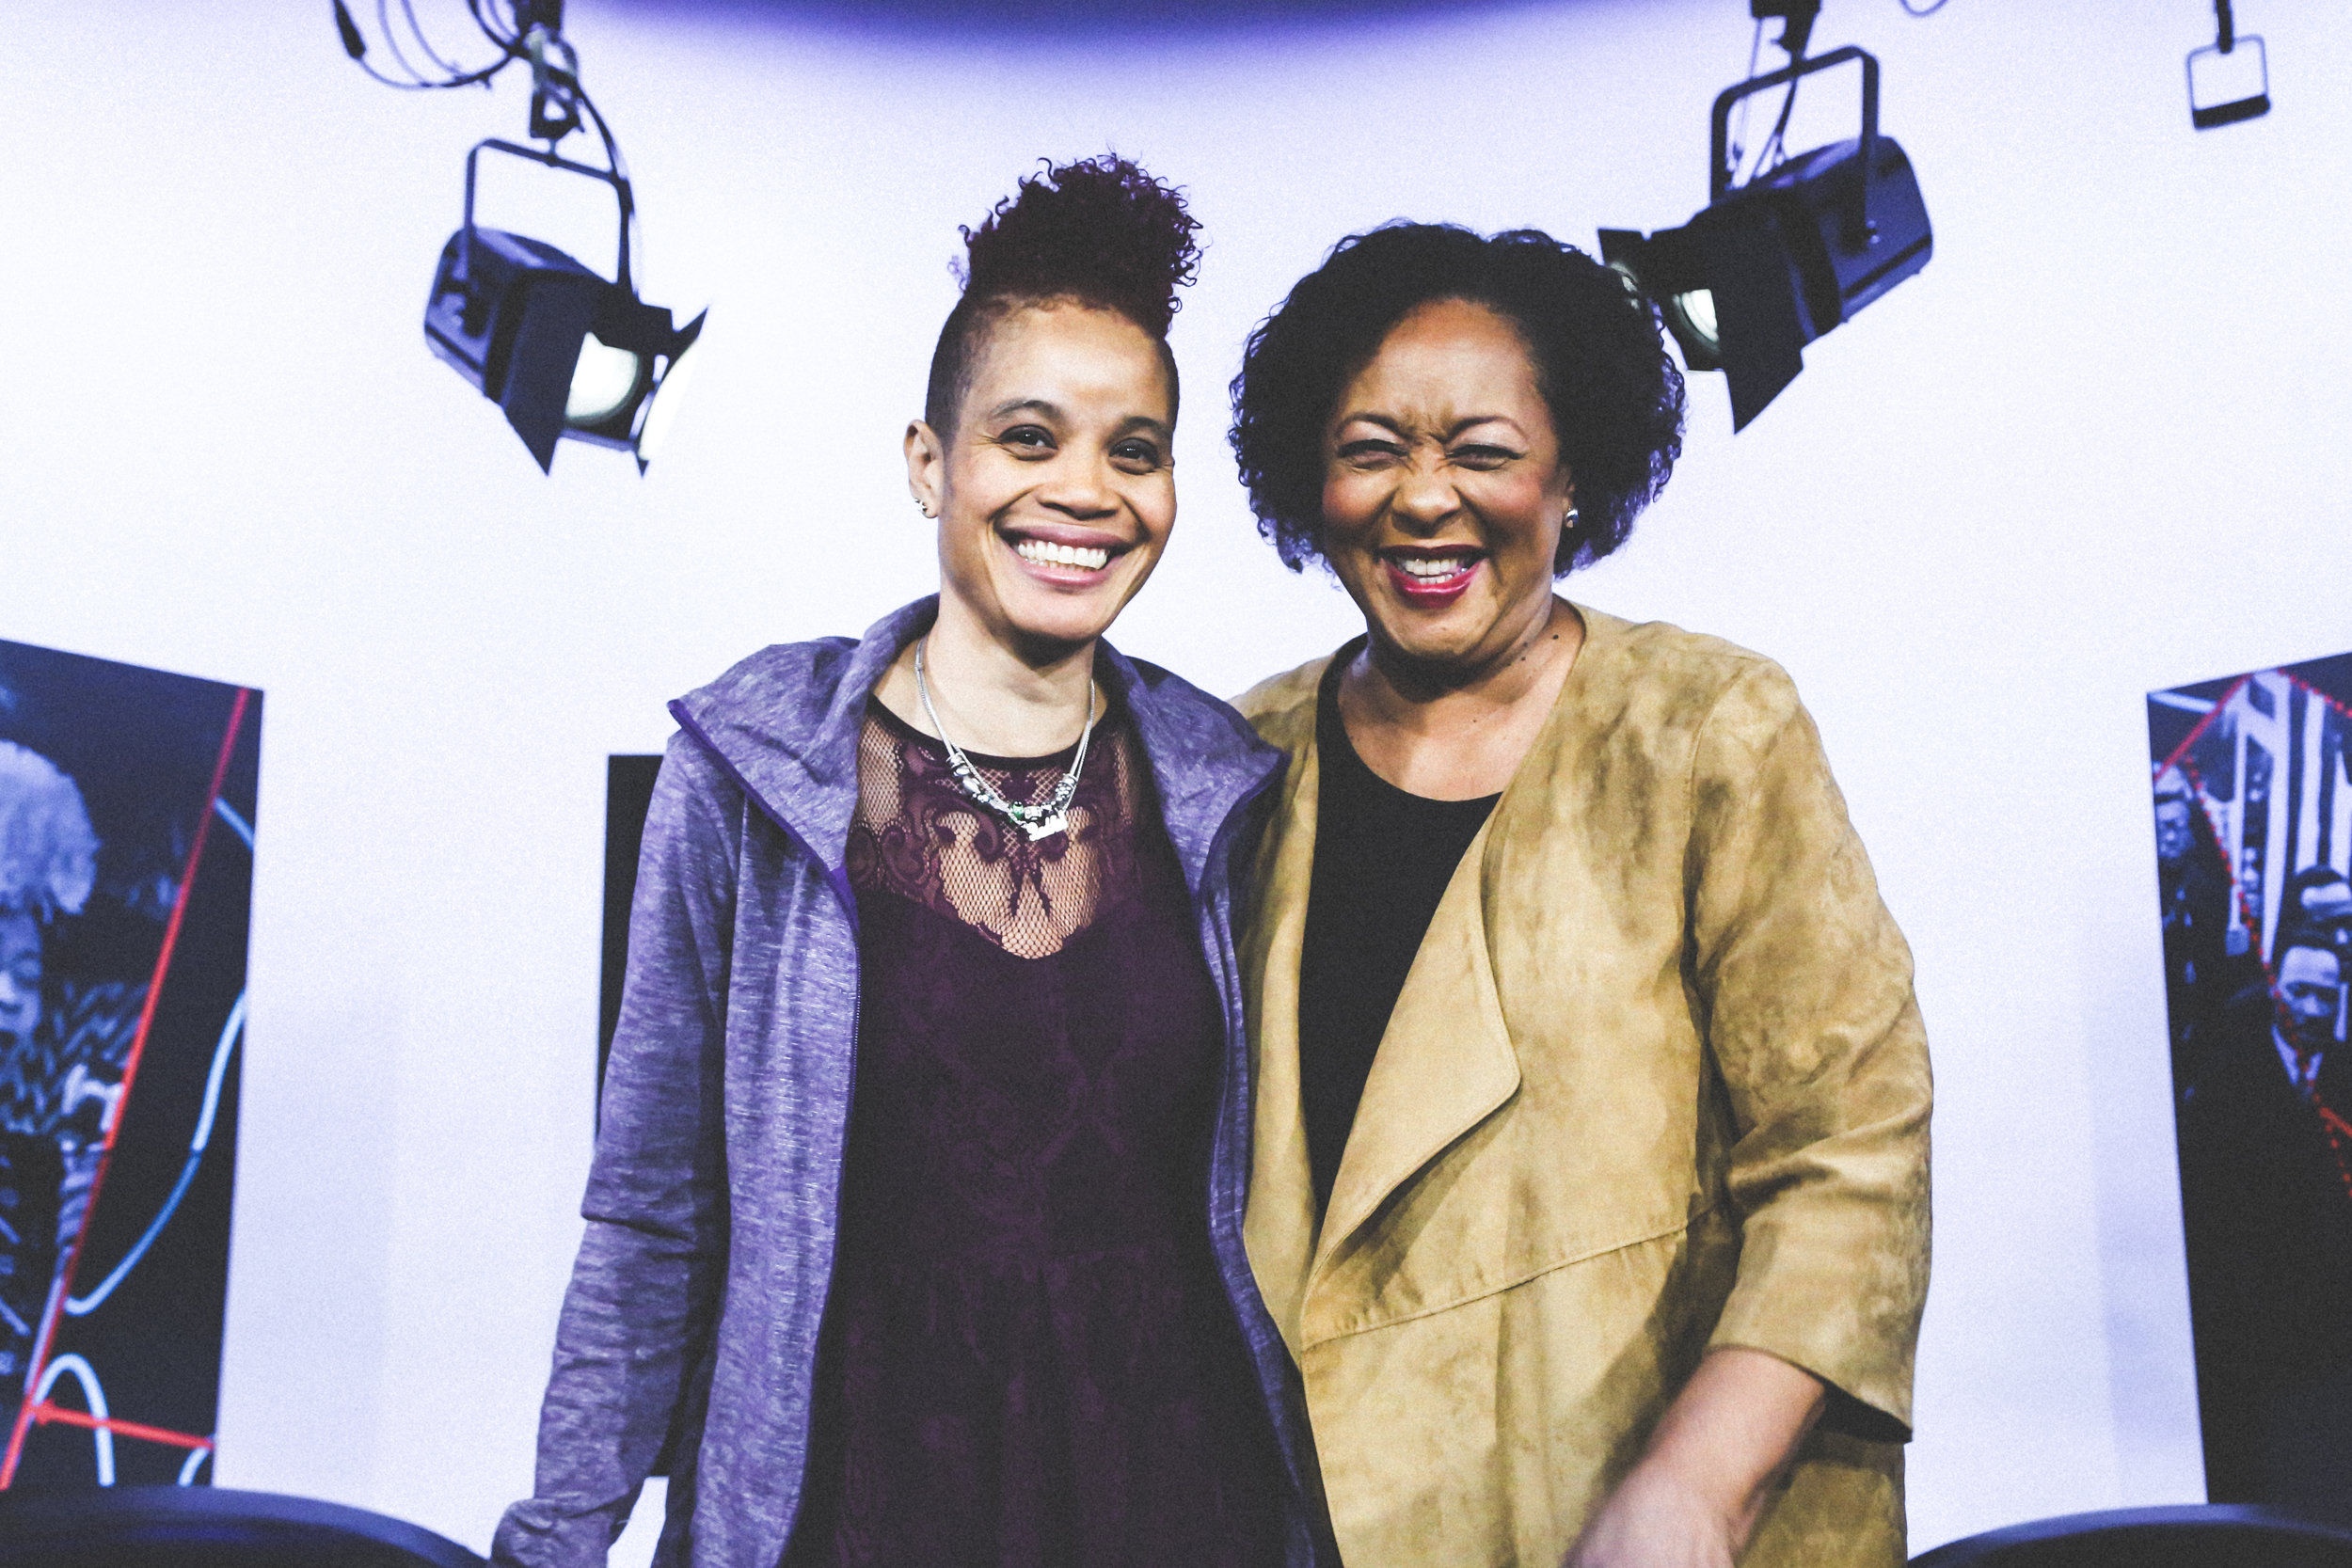 STACEYANN CHIN (left)  Spoken-word poet and activist  CAROL JENKINS (right)  Host for Black America on CUNY-TV   https://youtu.be/LPBNeBj2esE